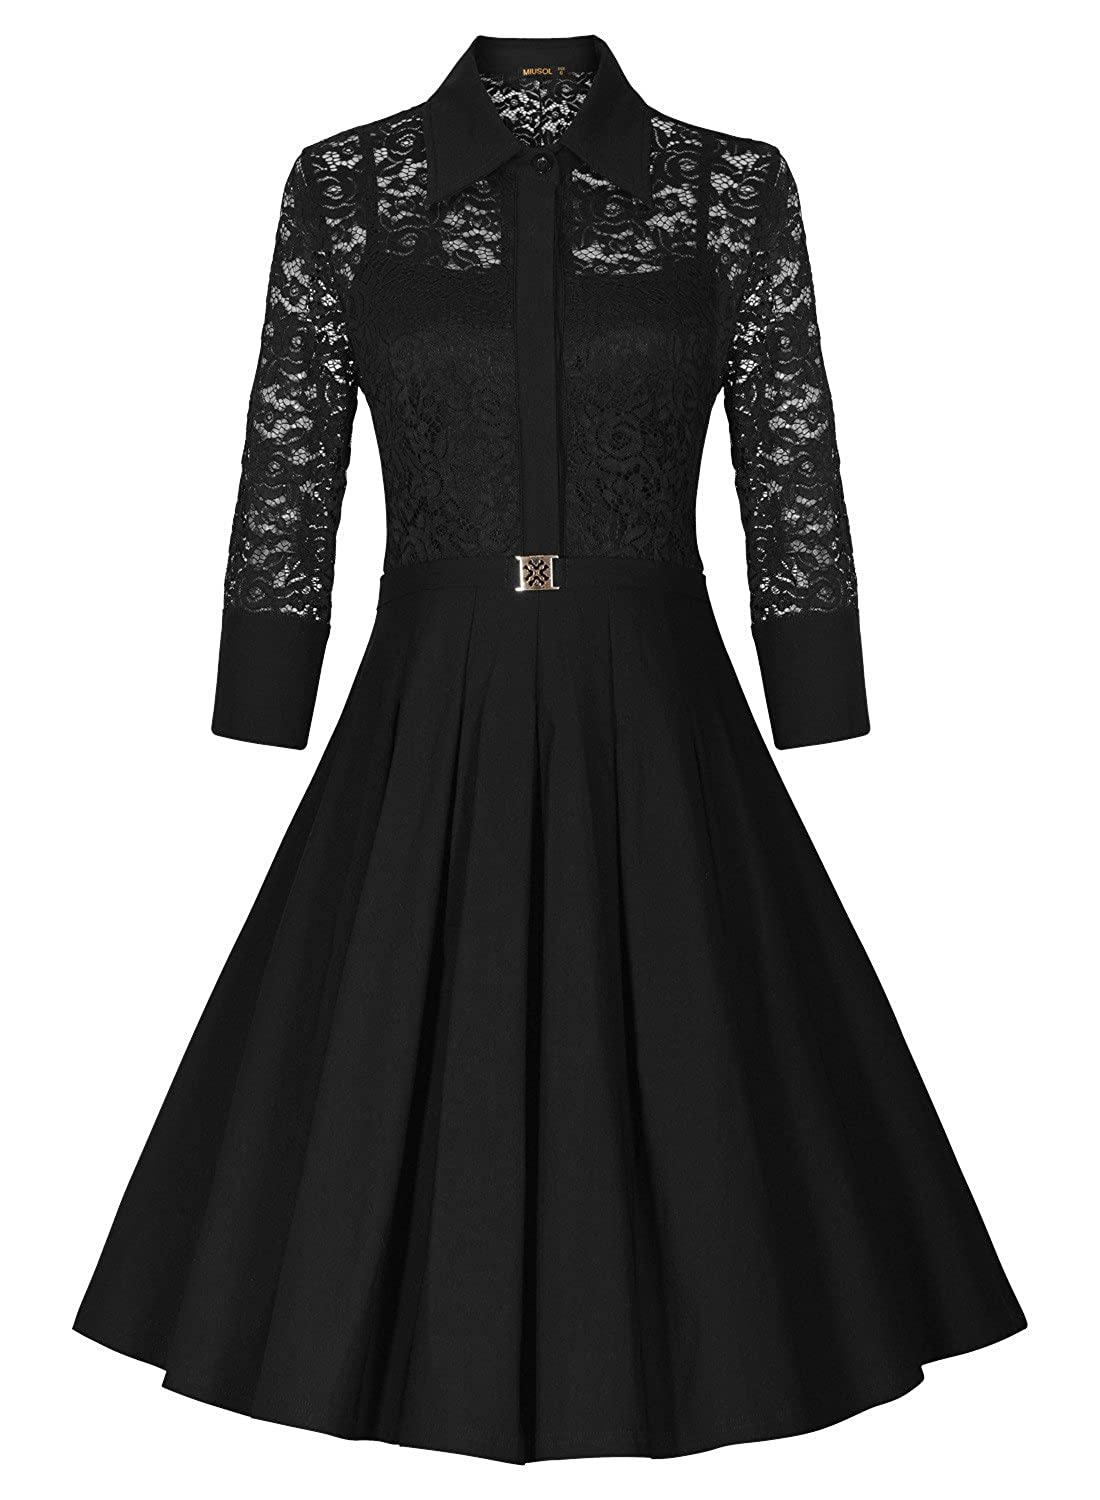 Black dress v neck 3 4 sleeves - Missmay Women S Vintage 1950s Style 3 4 Sleeve Black Lace Flare A Line Dress At Amazon Women S Clothing Store